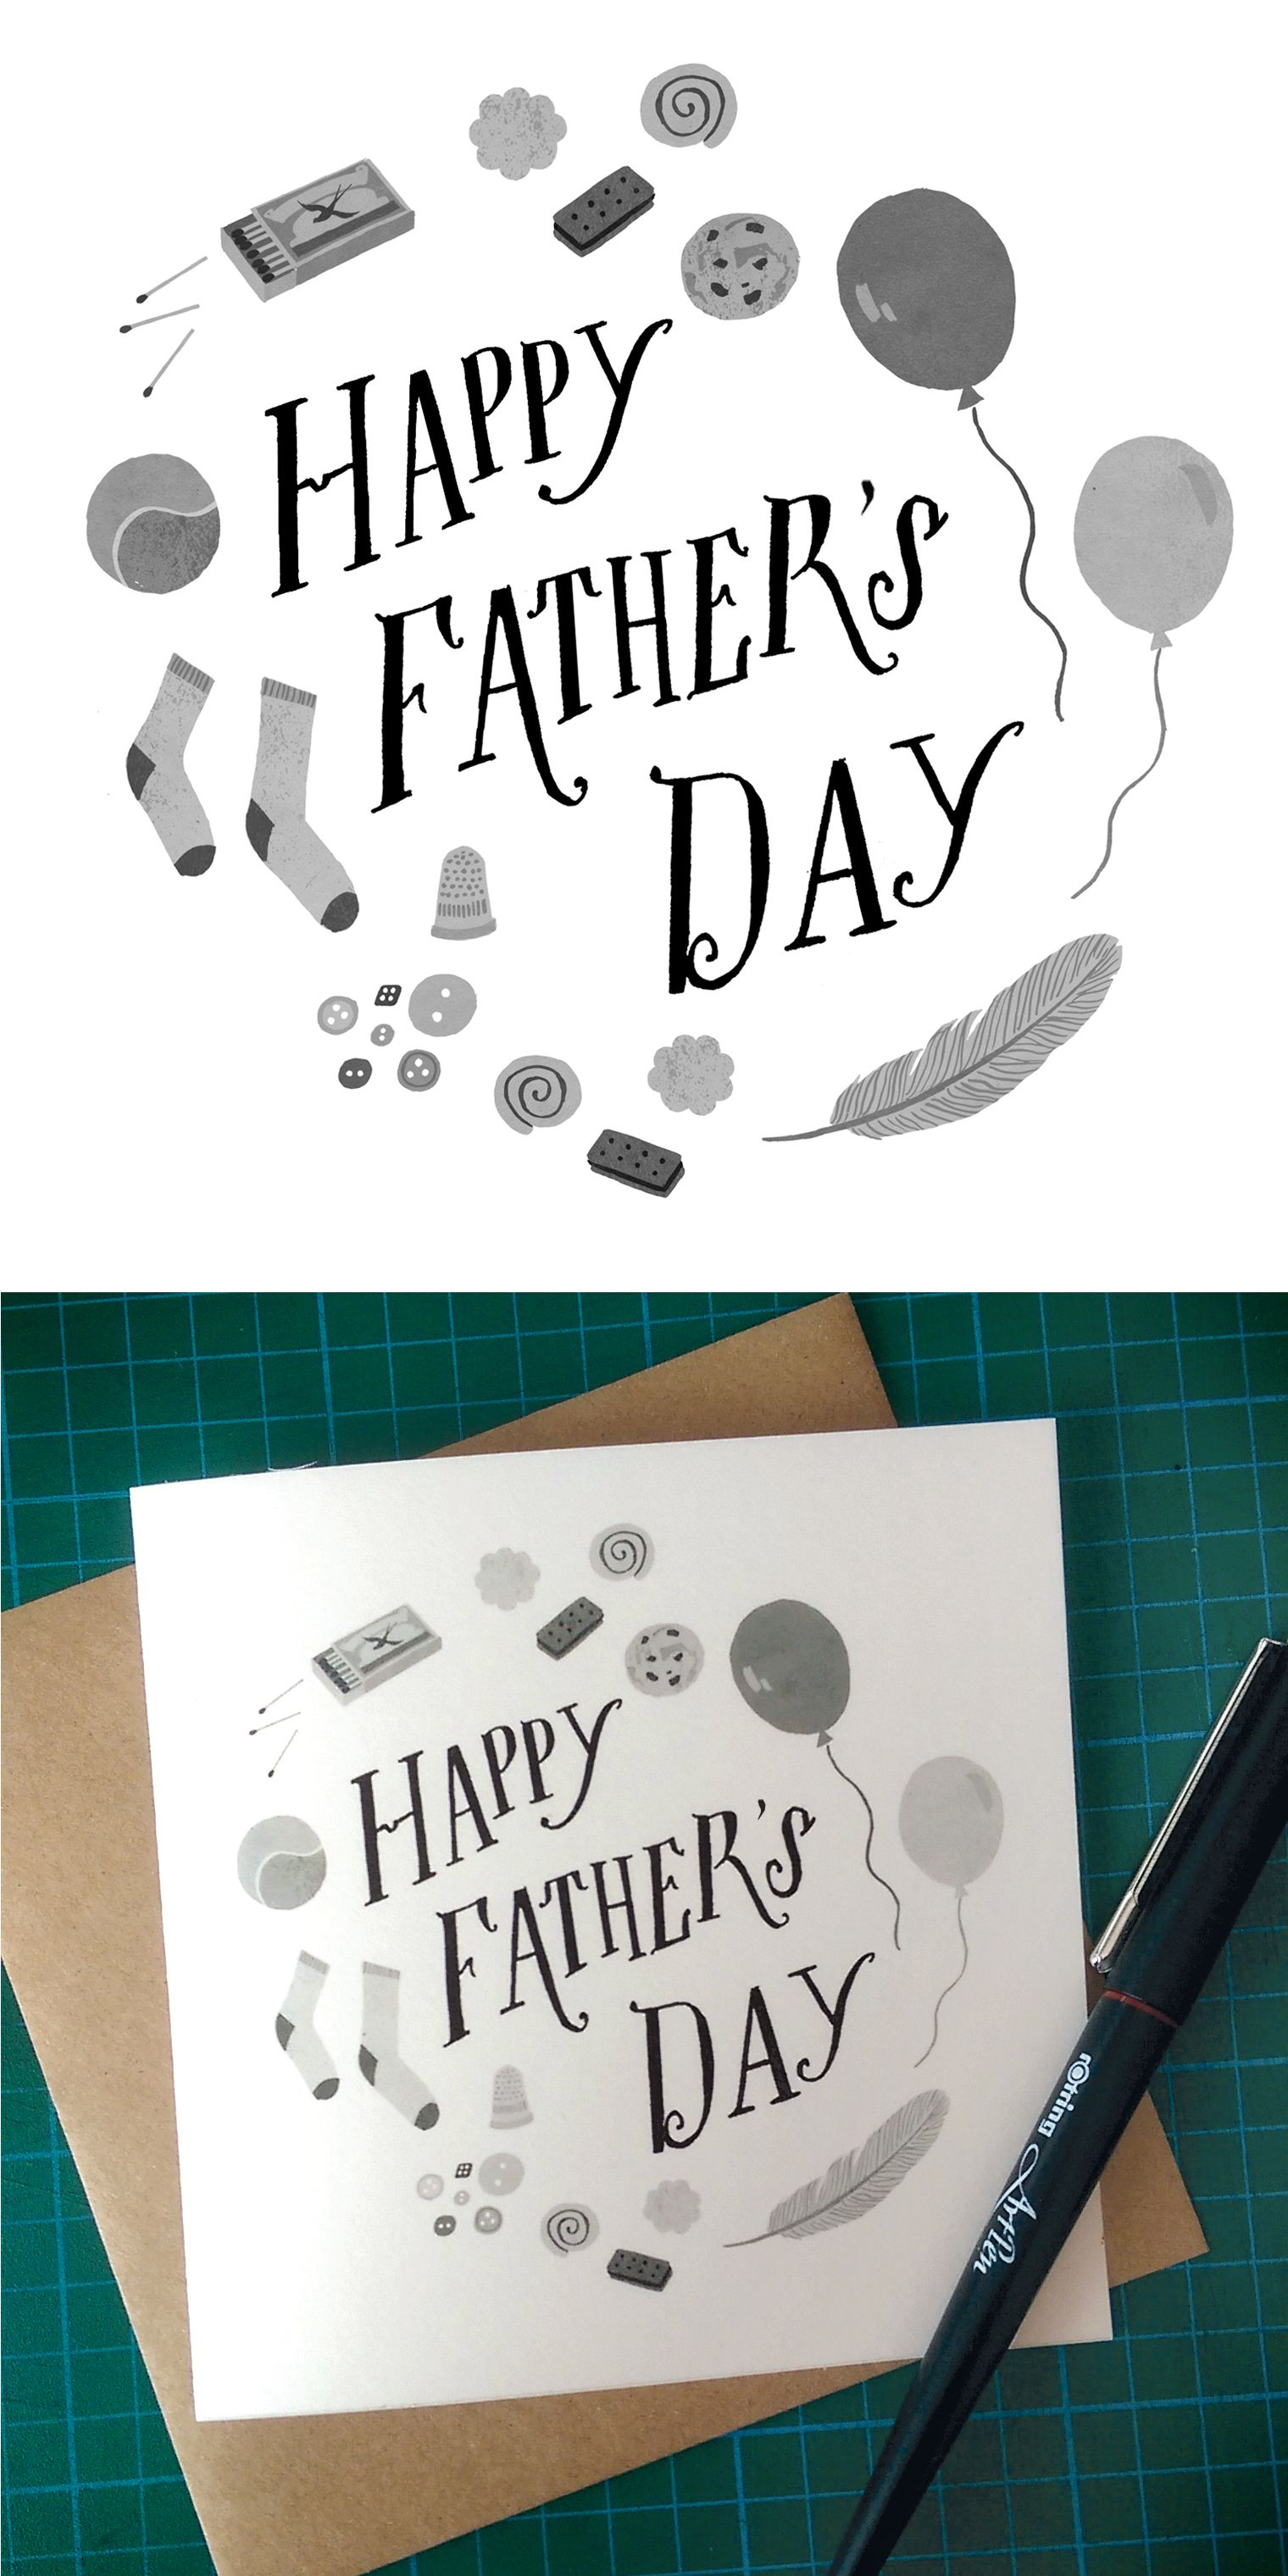 My Happy Fathers Day Illustrated Greetings Card, Hand Drawn With